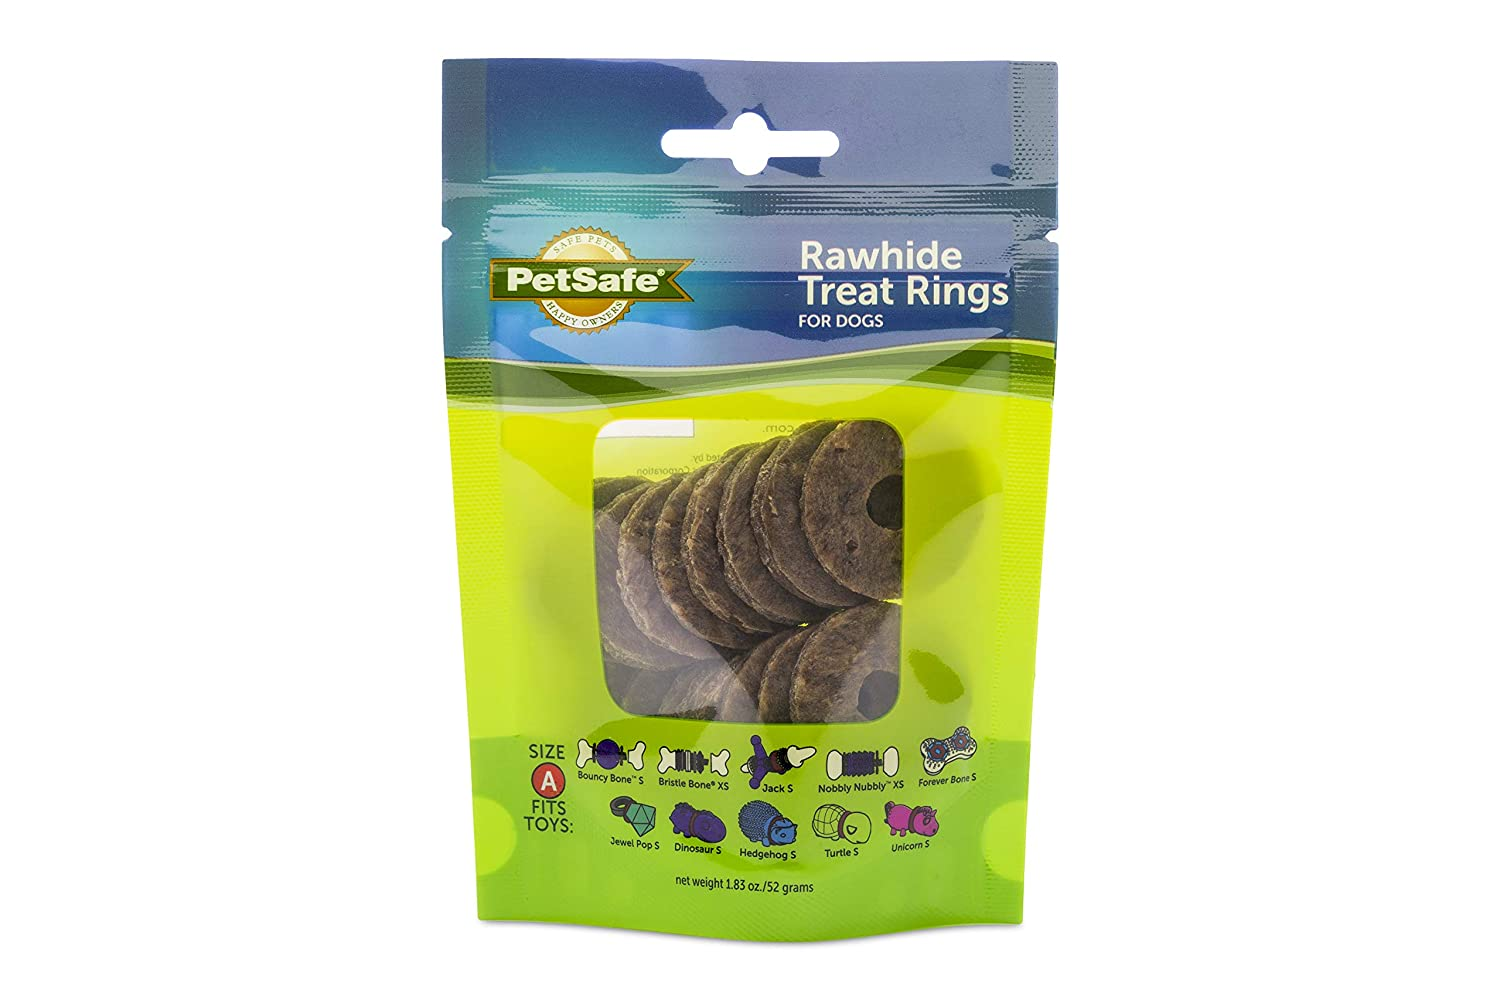 Busy Buddy Gnawhide Refill Size:Medium Pack of 3